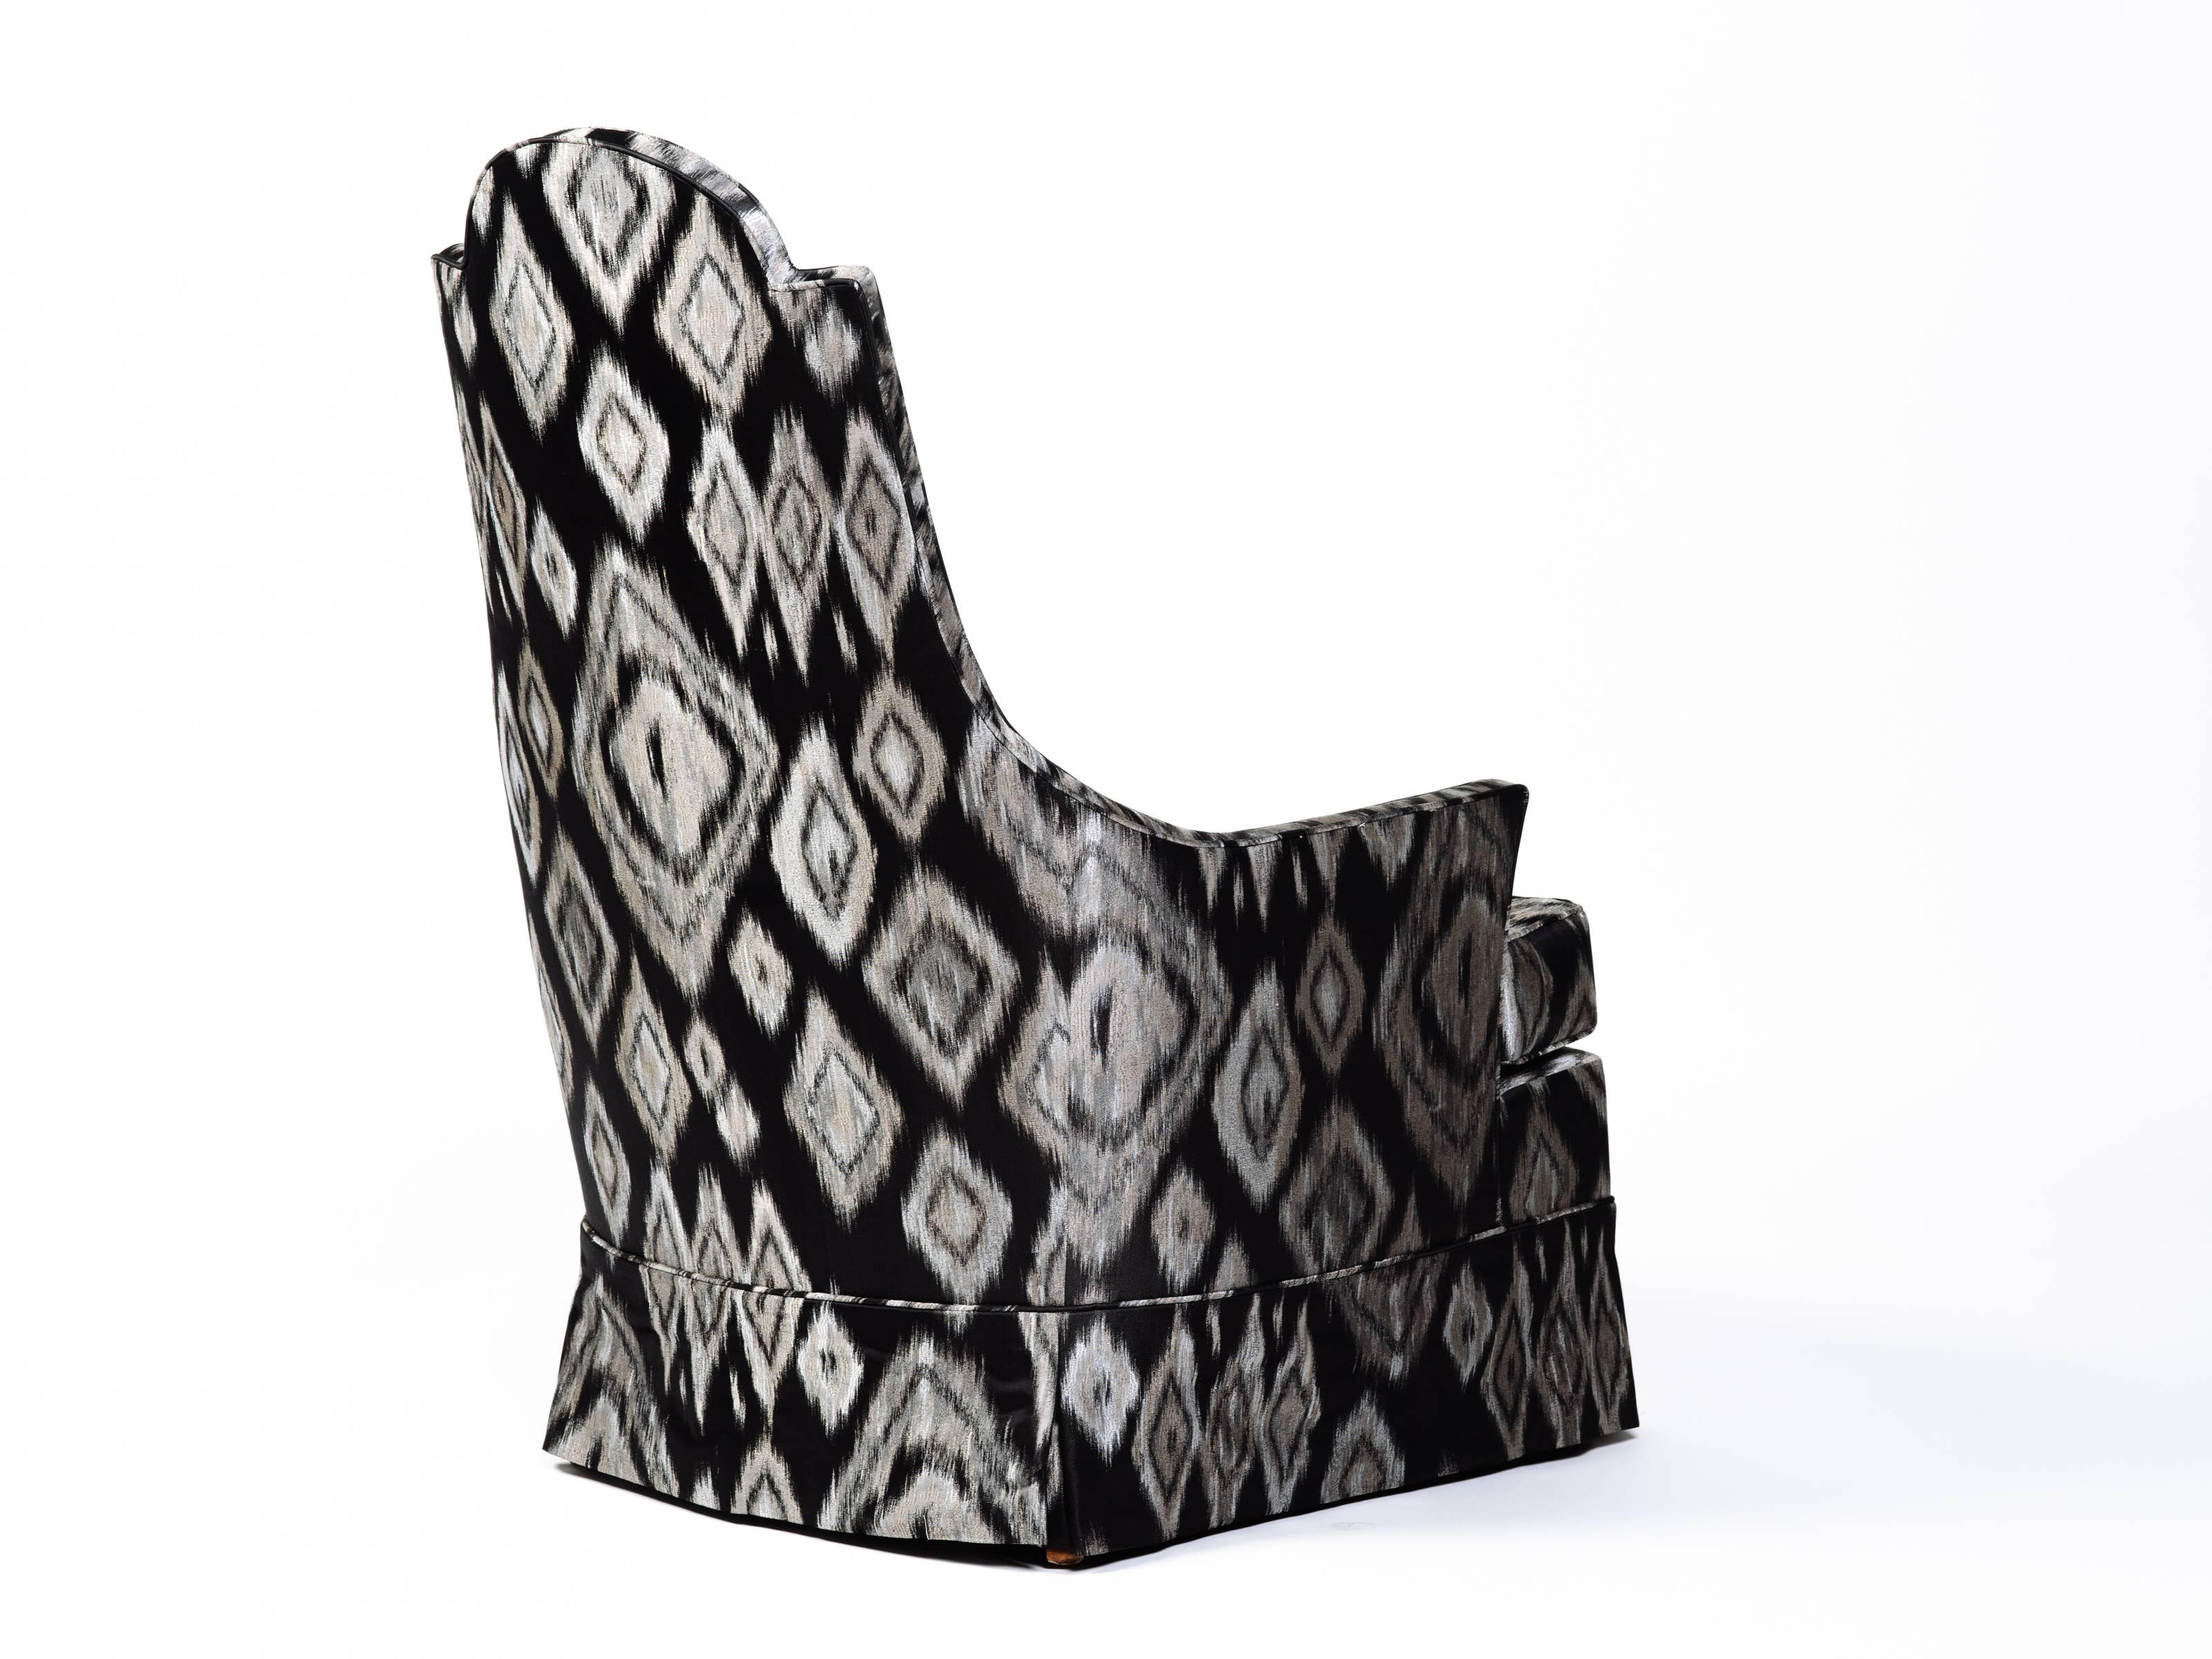 mid century modern cane barrel chairs sports authority pair of hollywood regency lounge in graphic ikat silk at 1stdibs